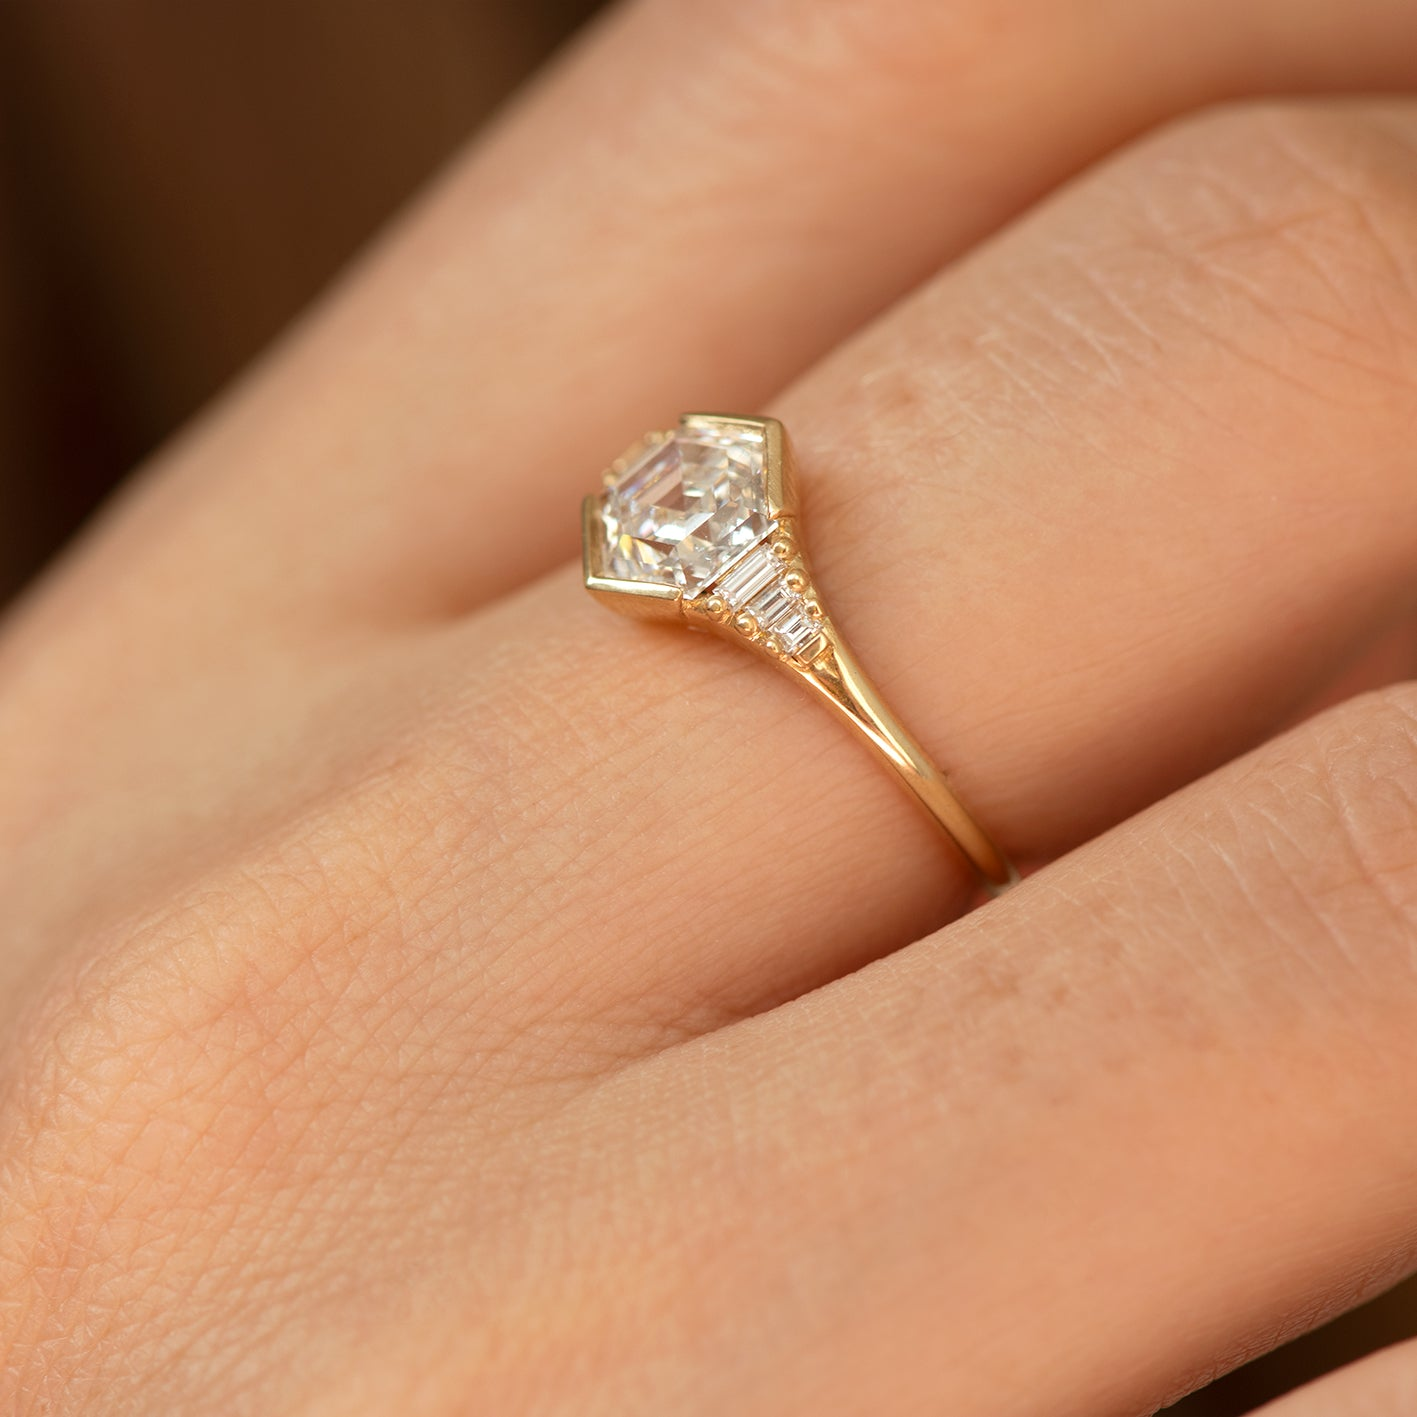 Hexagon step cut engagement ring3